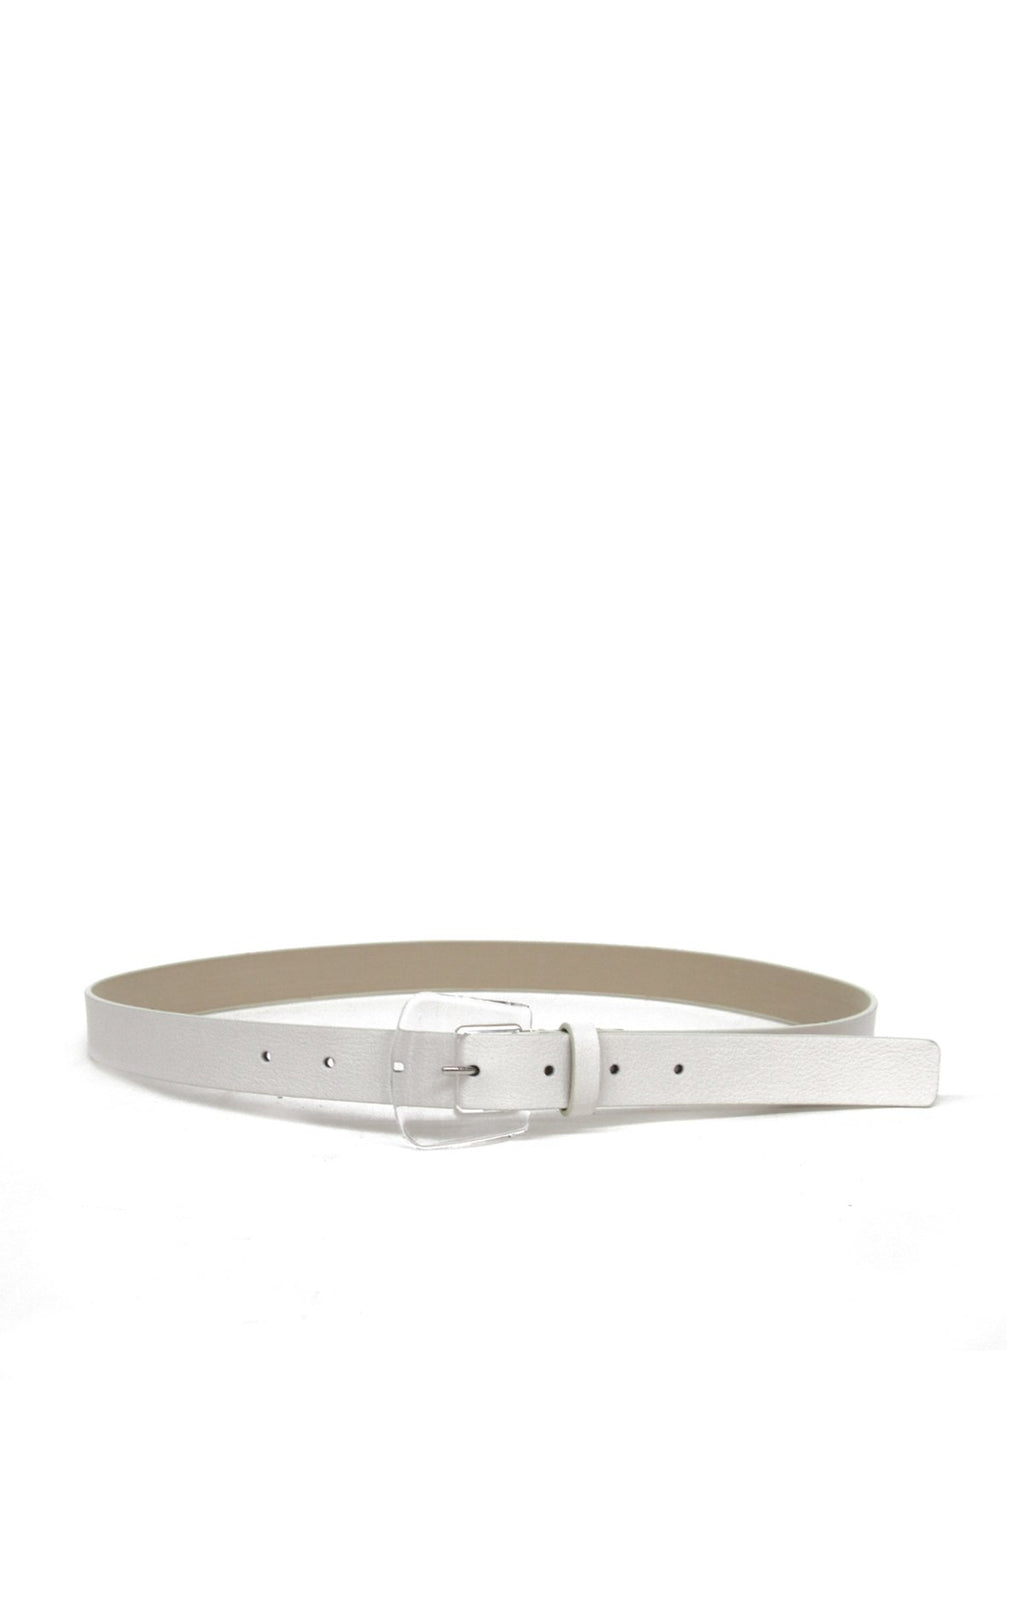 B-LOW THE BELT CECE MINI LEATHER BELT - BELT